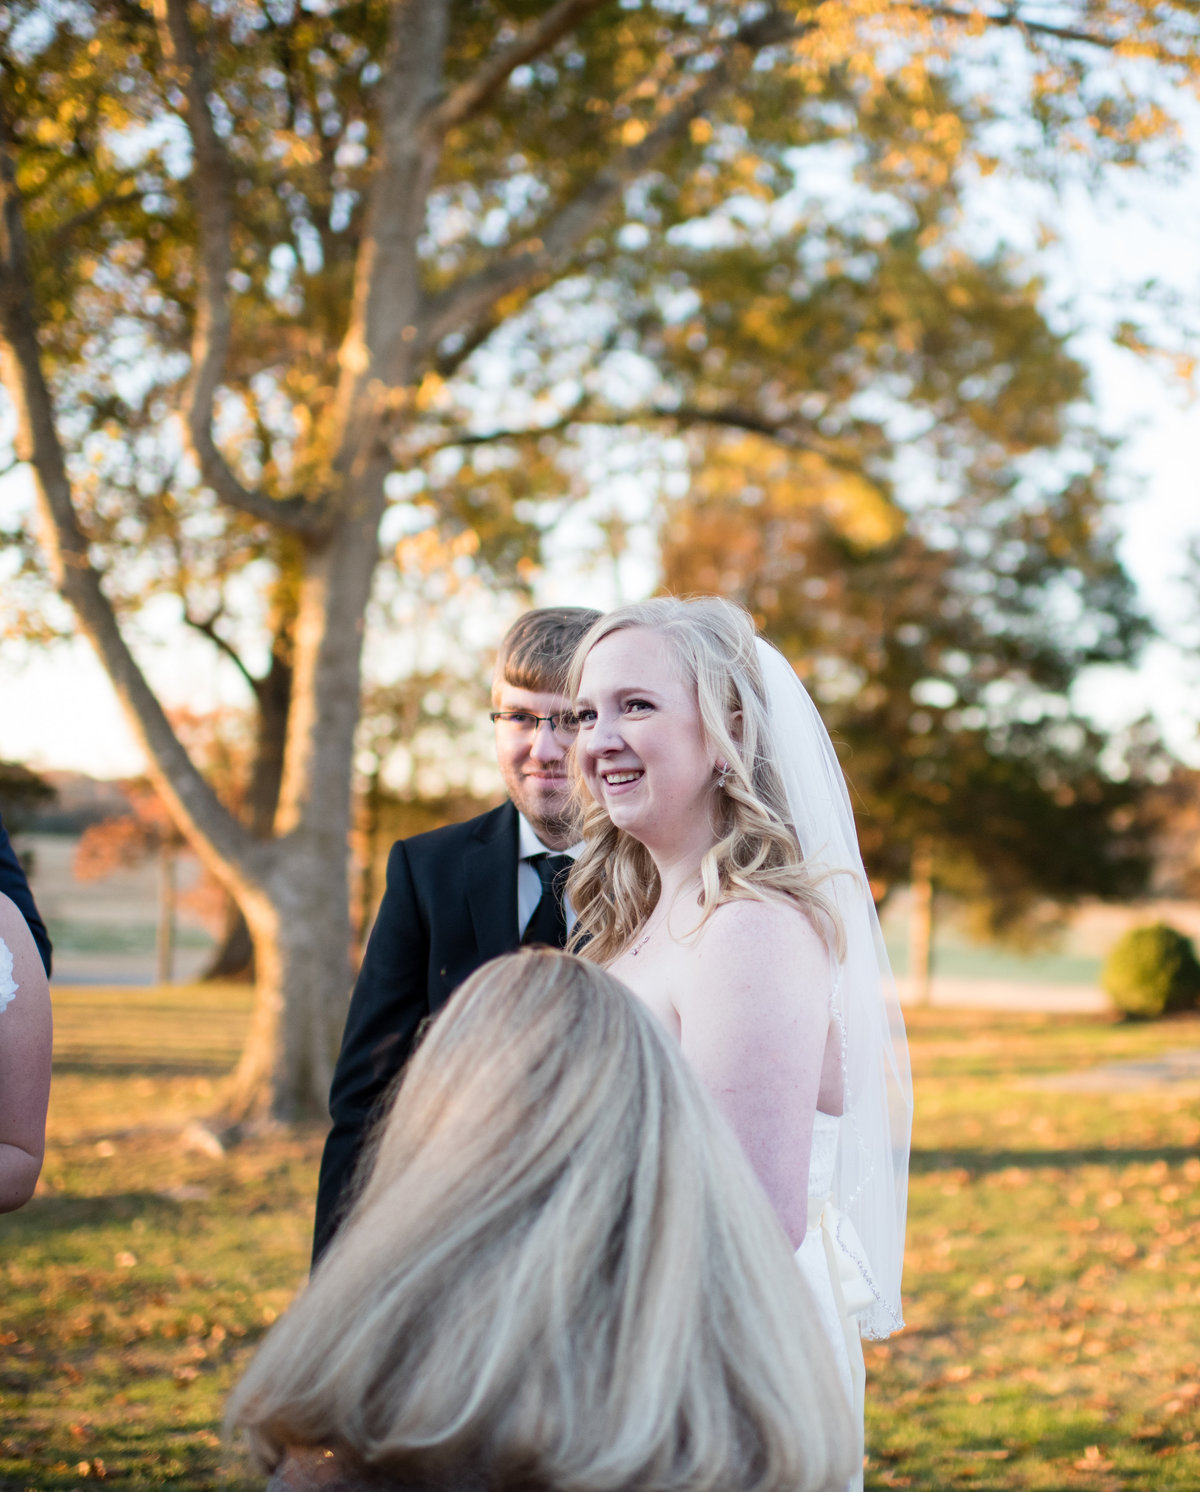 Tennessee Wedding Photographer - Mint Magnolia Photography3838